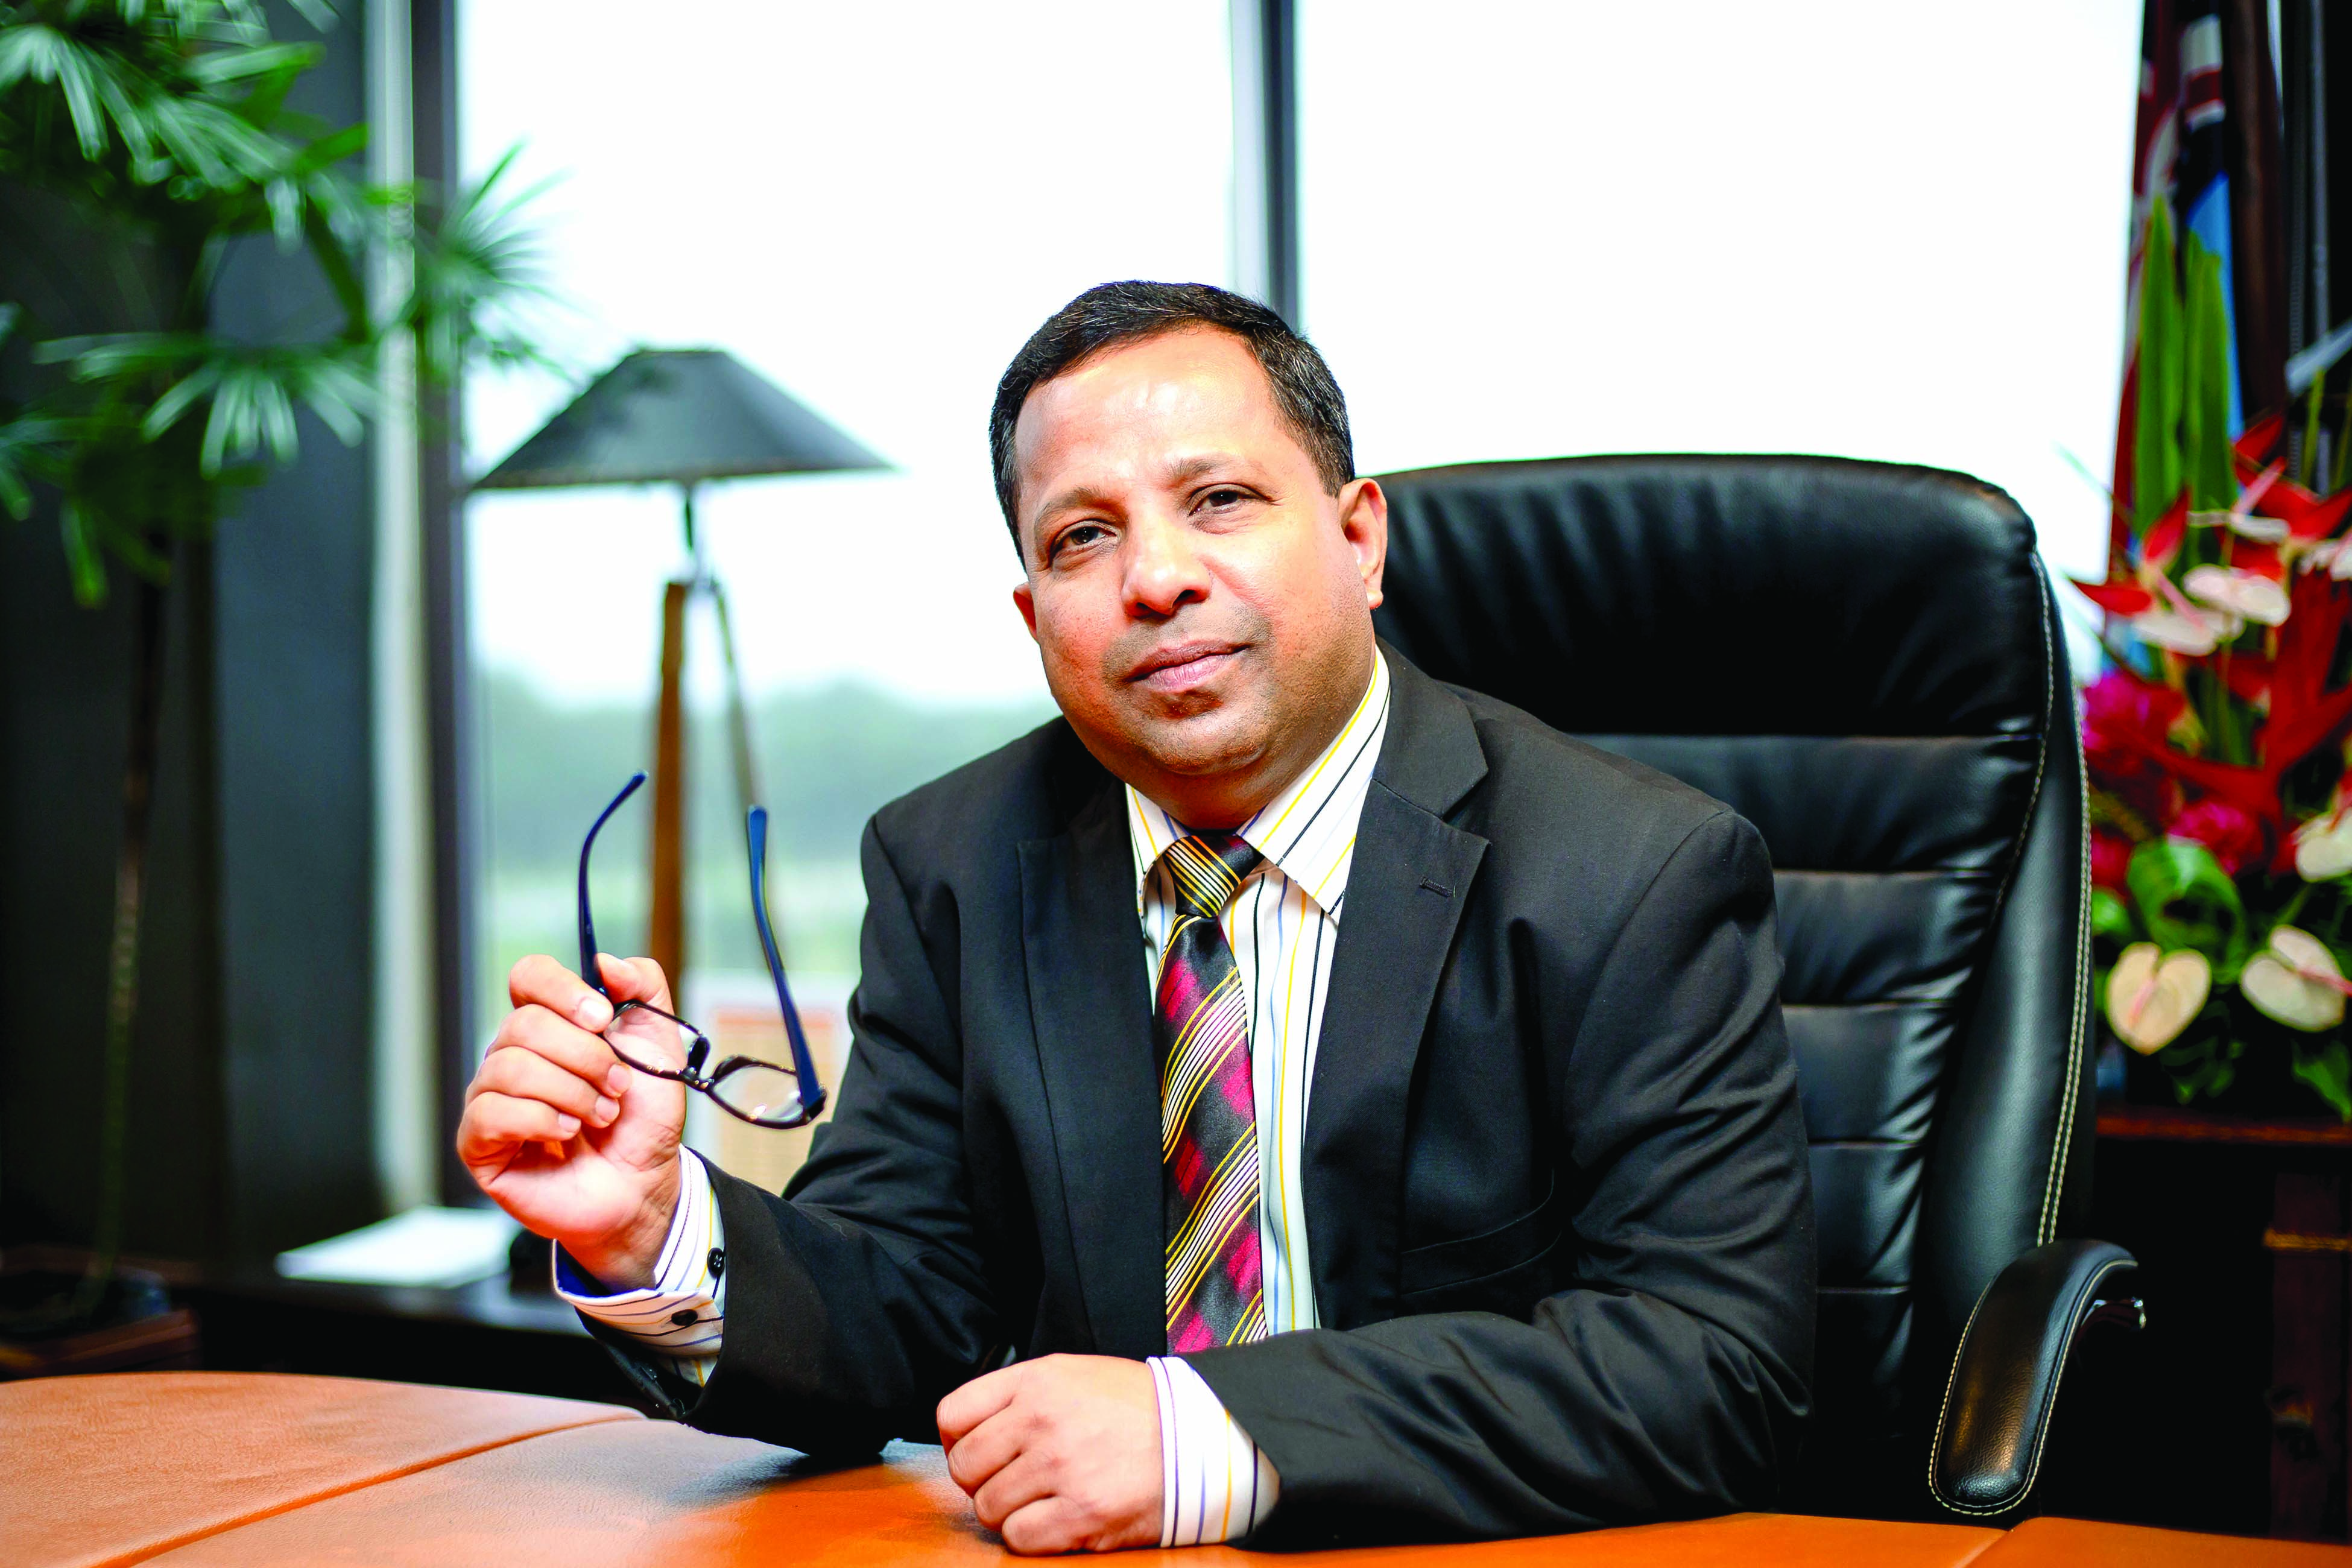 Fijian Holdings Limited chief executive officer Nouzab Fareed